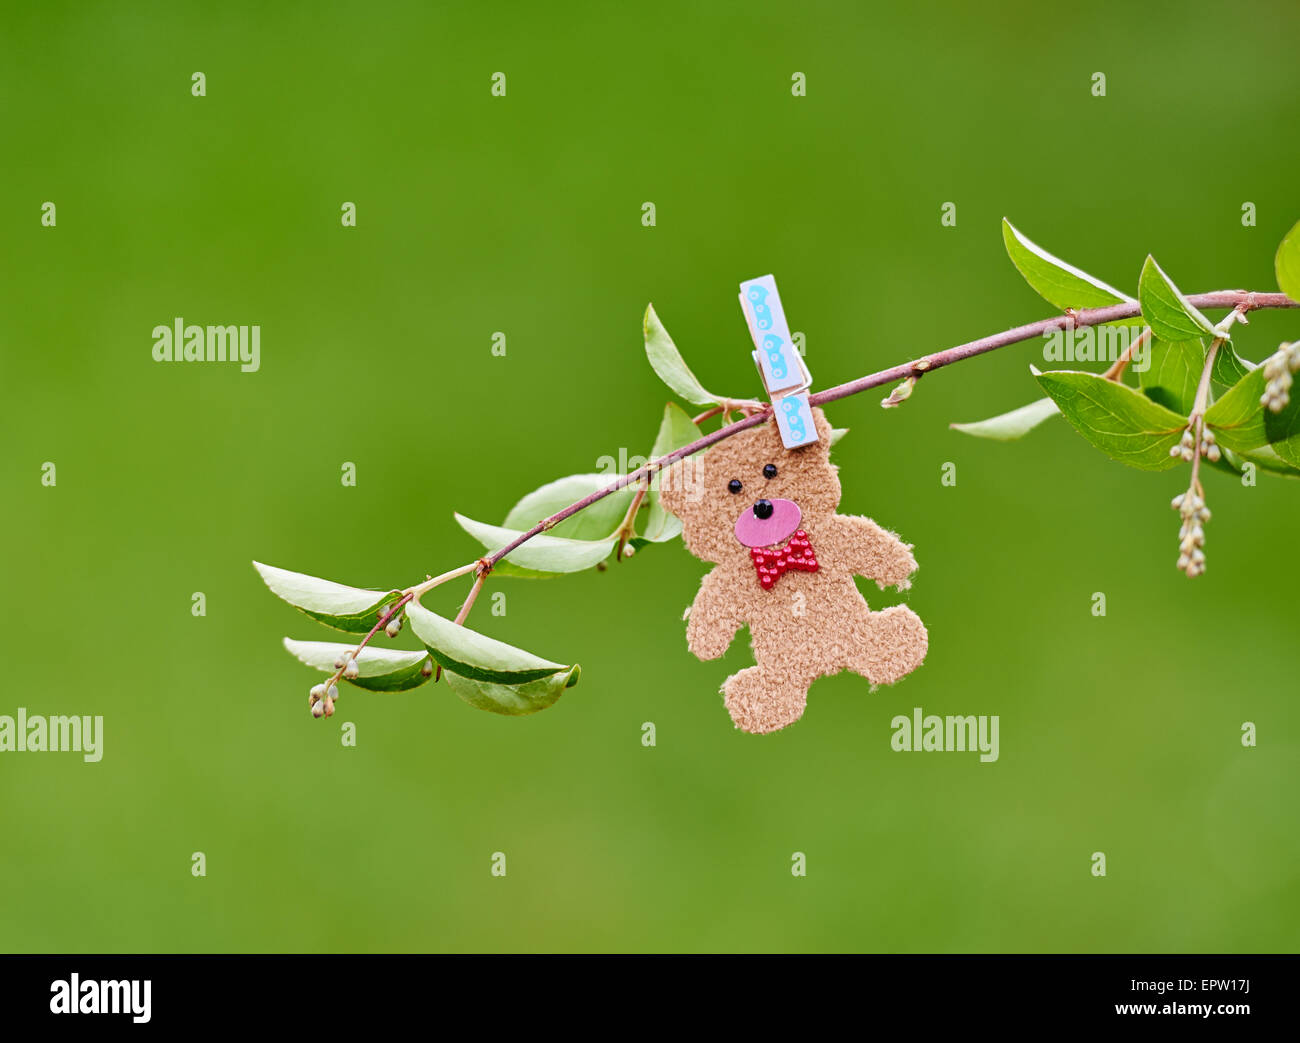 Cute romantic little teddy pegged on a branch in a field - Stock Image